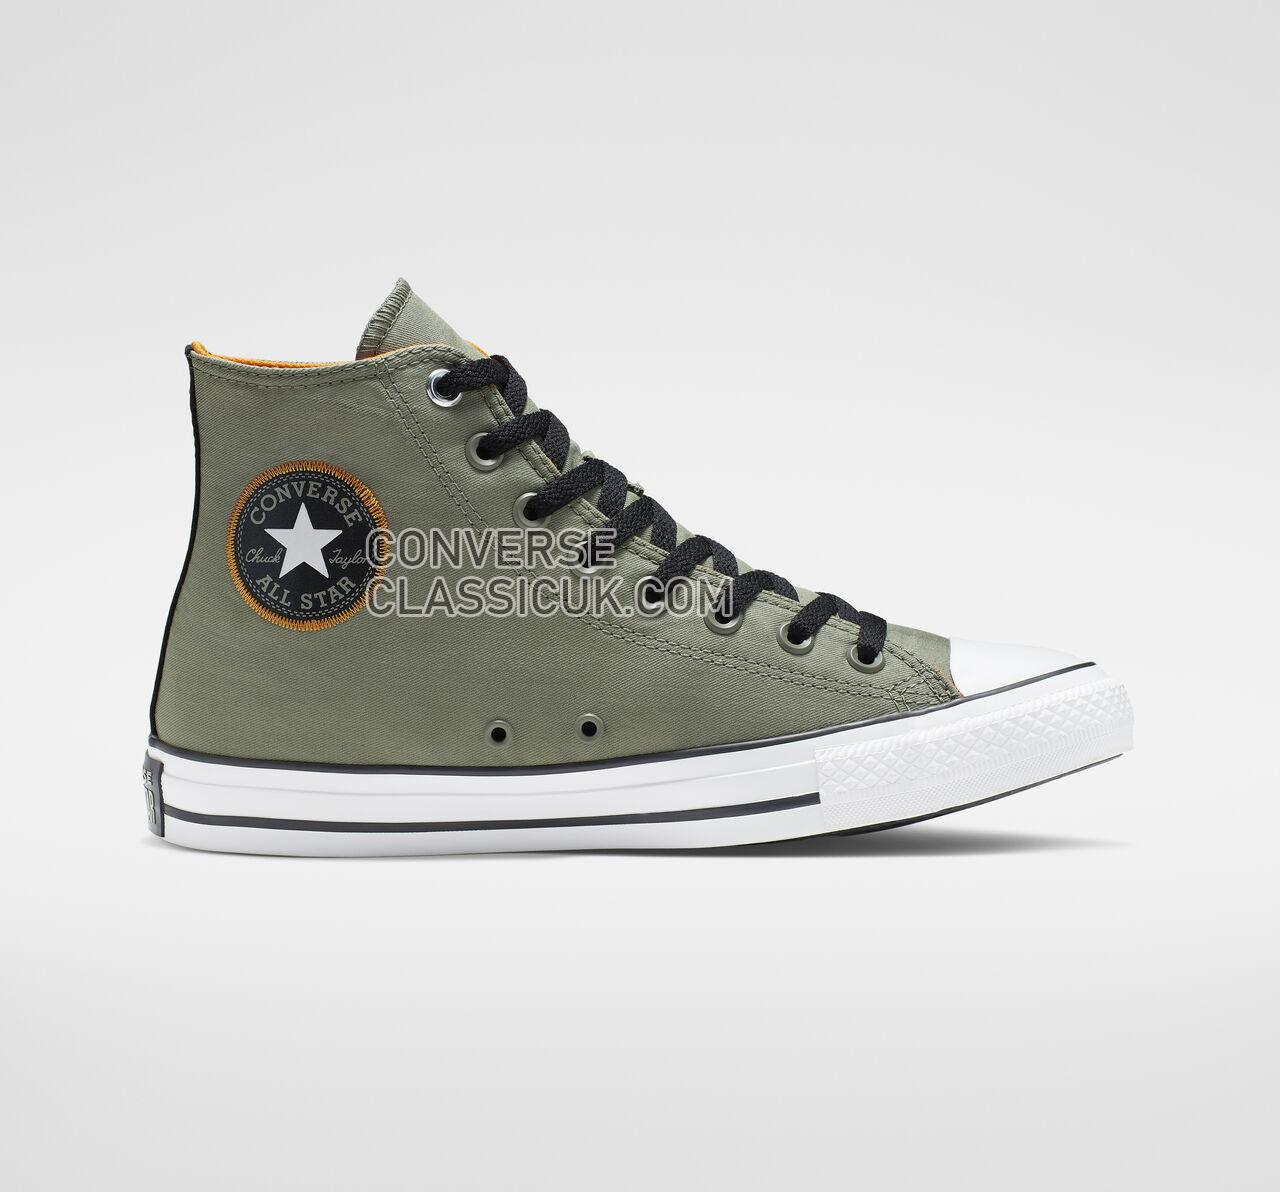 Converse Chuck Taylor All Star Space Explorer High Top Mens Womens Unisex 164881F Jade Stone/Black/White Shoes